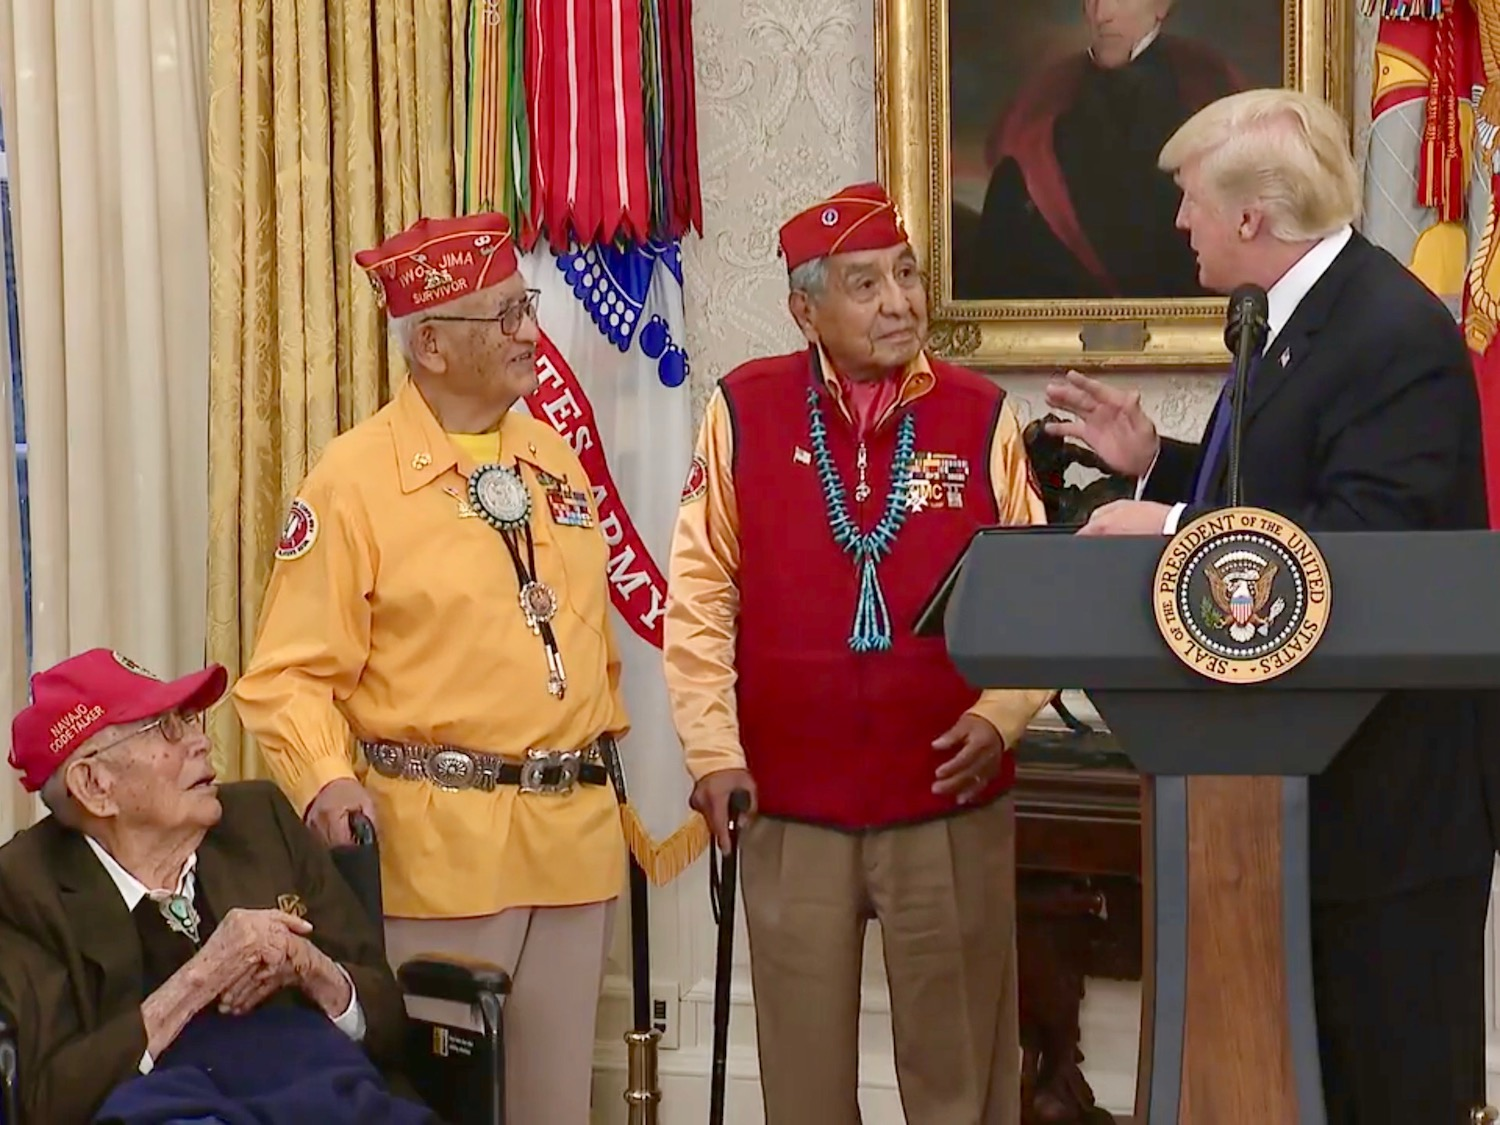 Cronkite News: President Trump overshadows Code Talkers with 'Pocahontas' jab